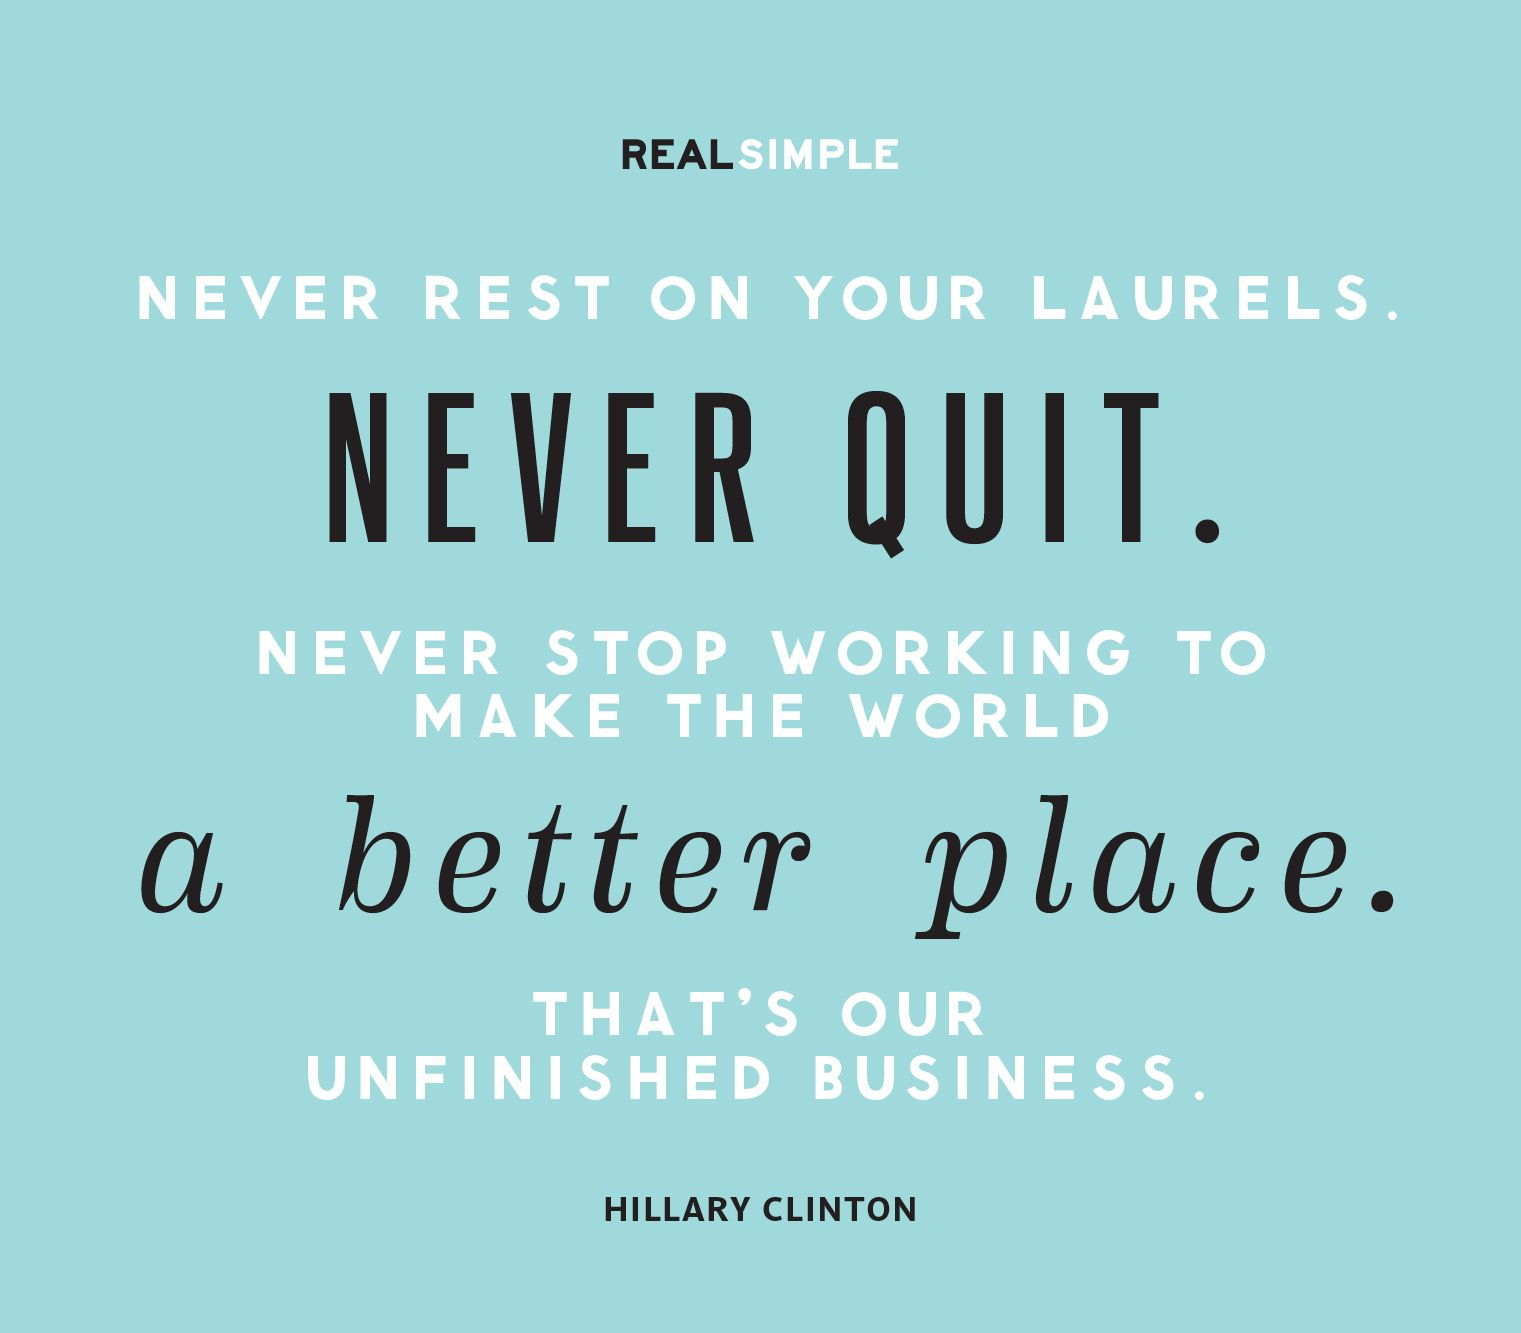 Never Rest On Your Laurels Never Quit Never Stop Working To Make